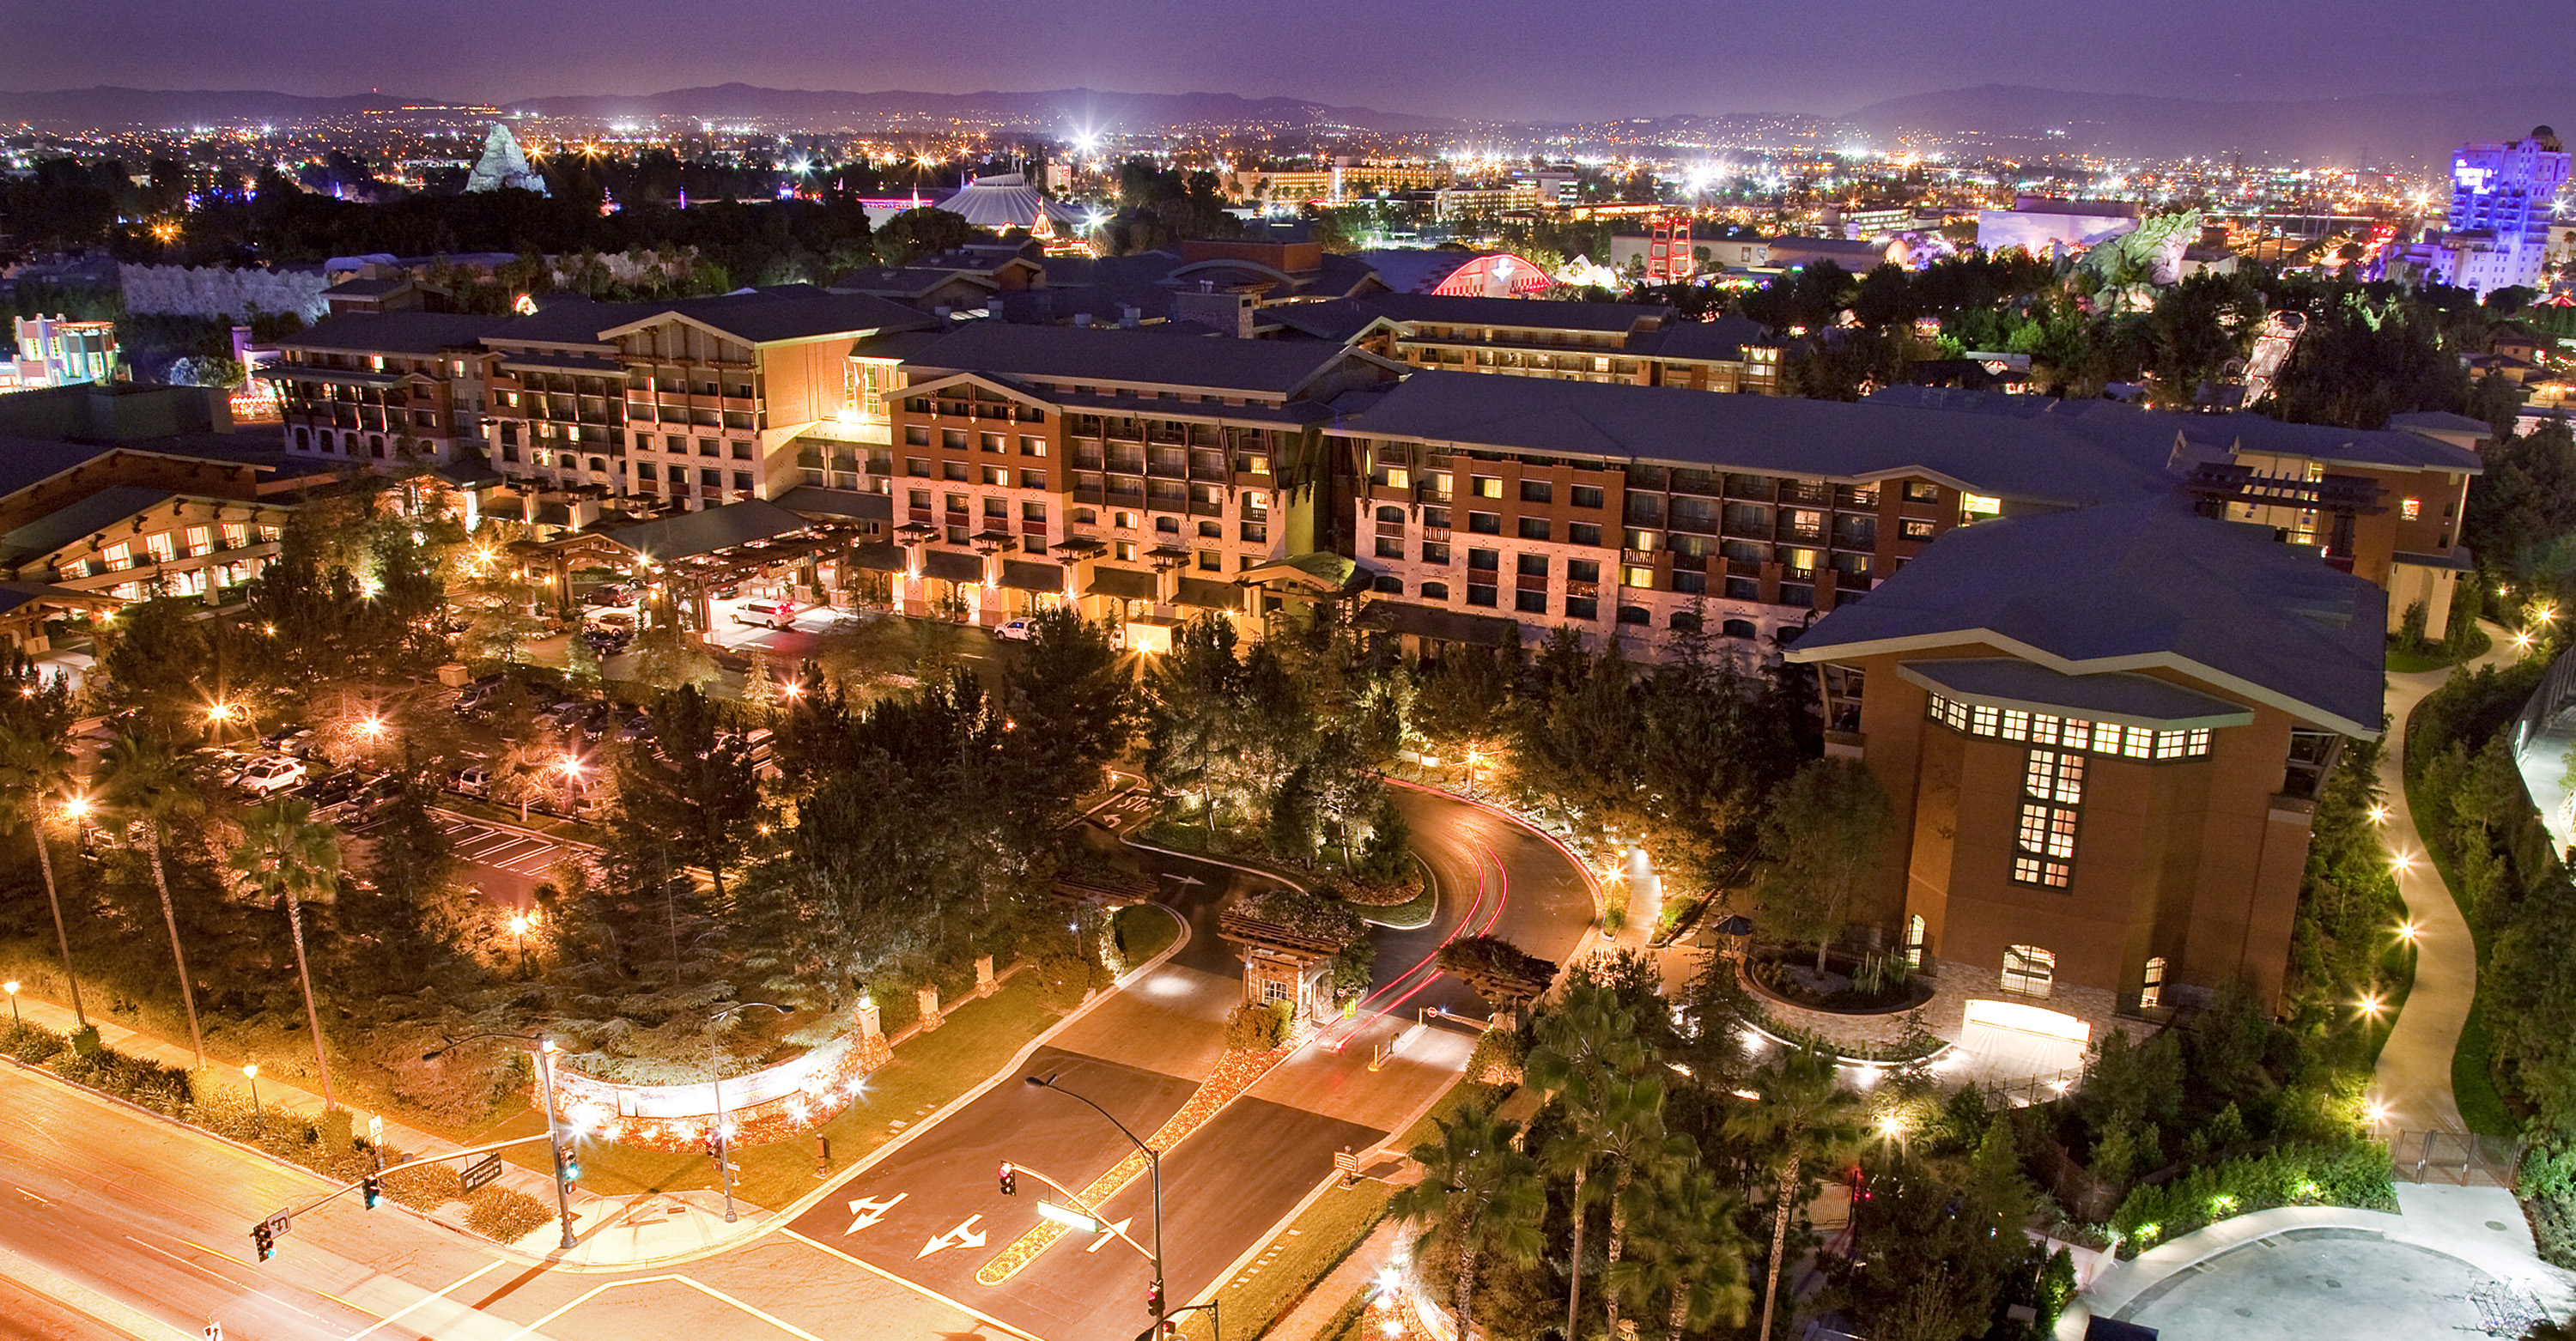 Disneyland Resort Hotels Offer More Magic and Memories